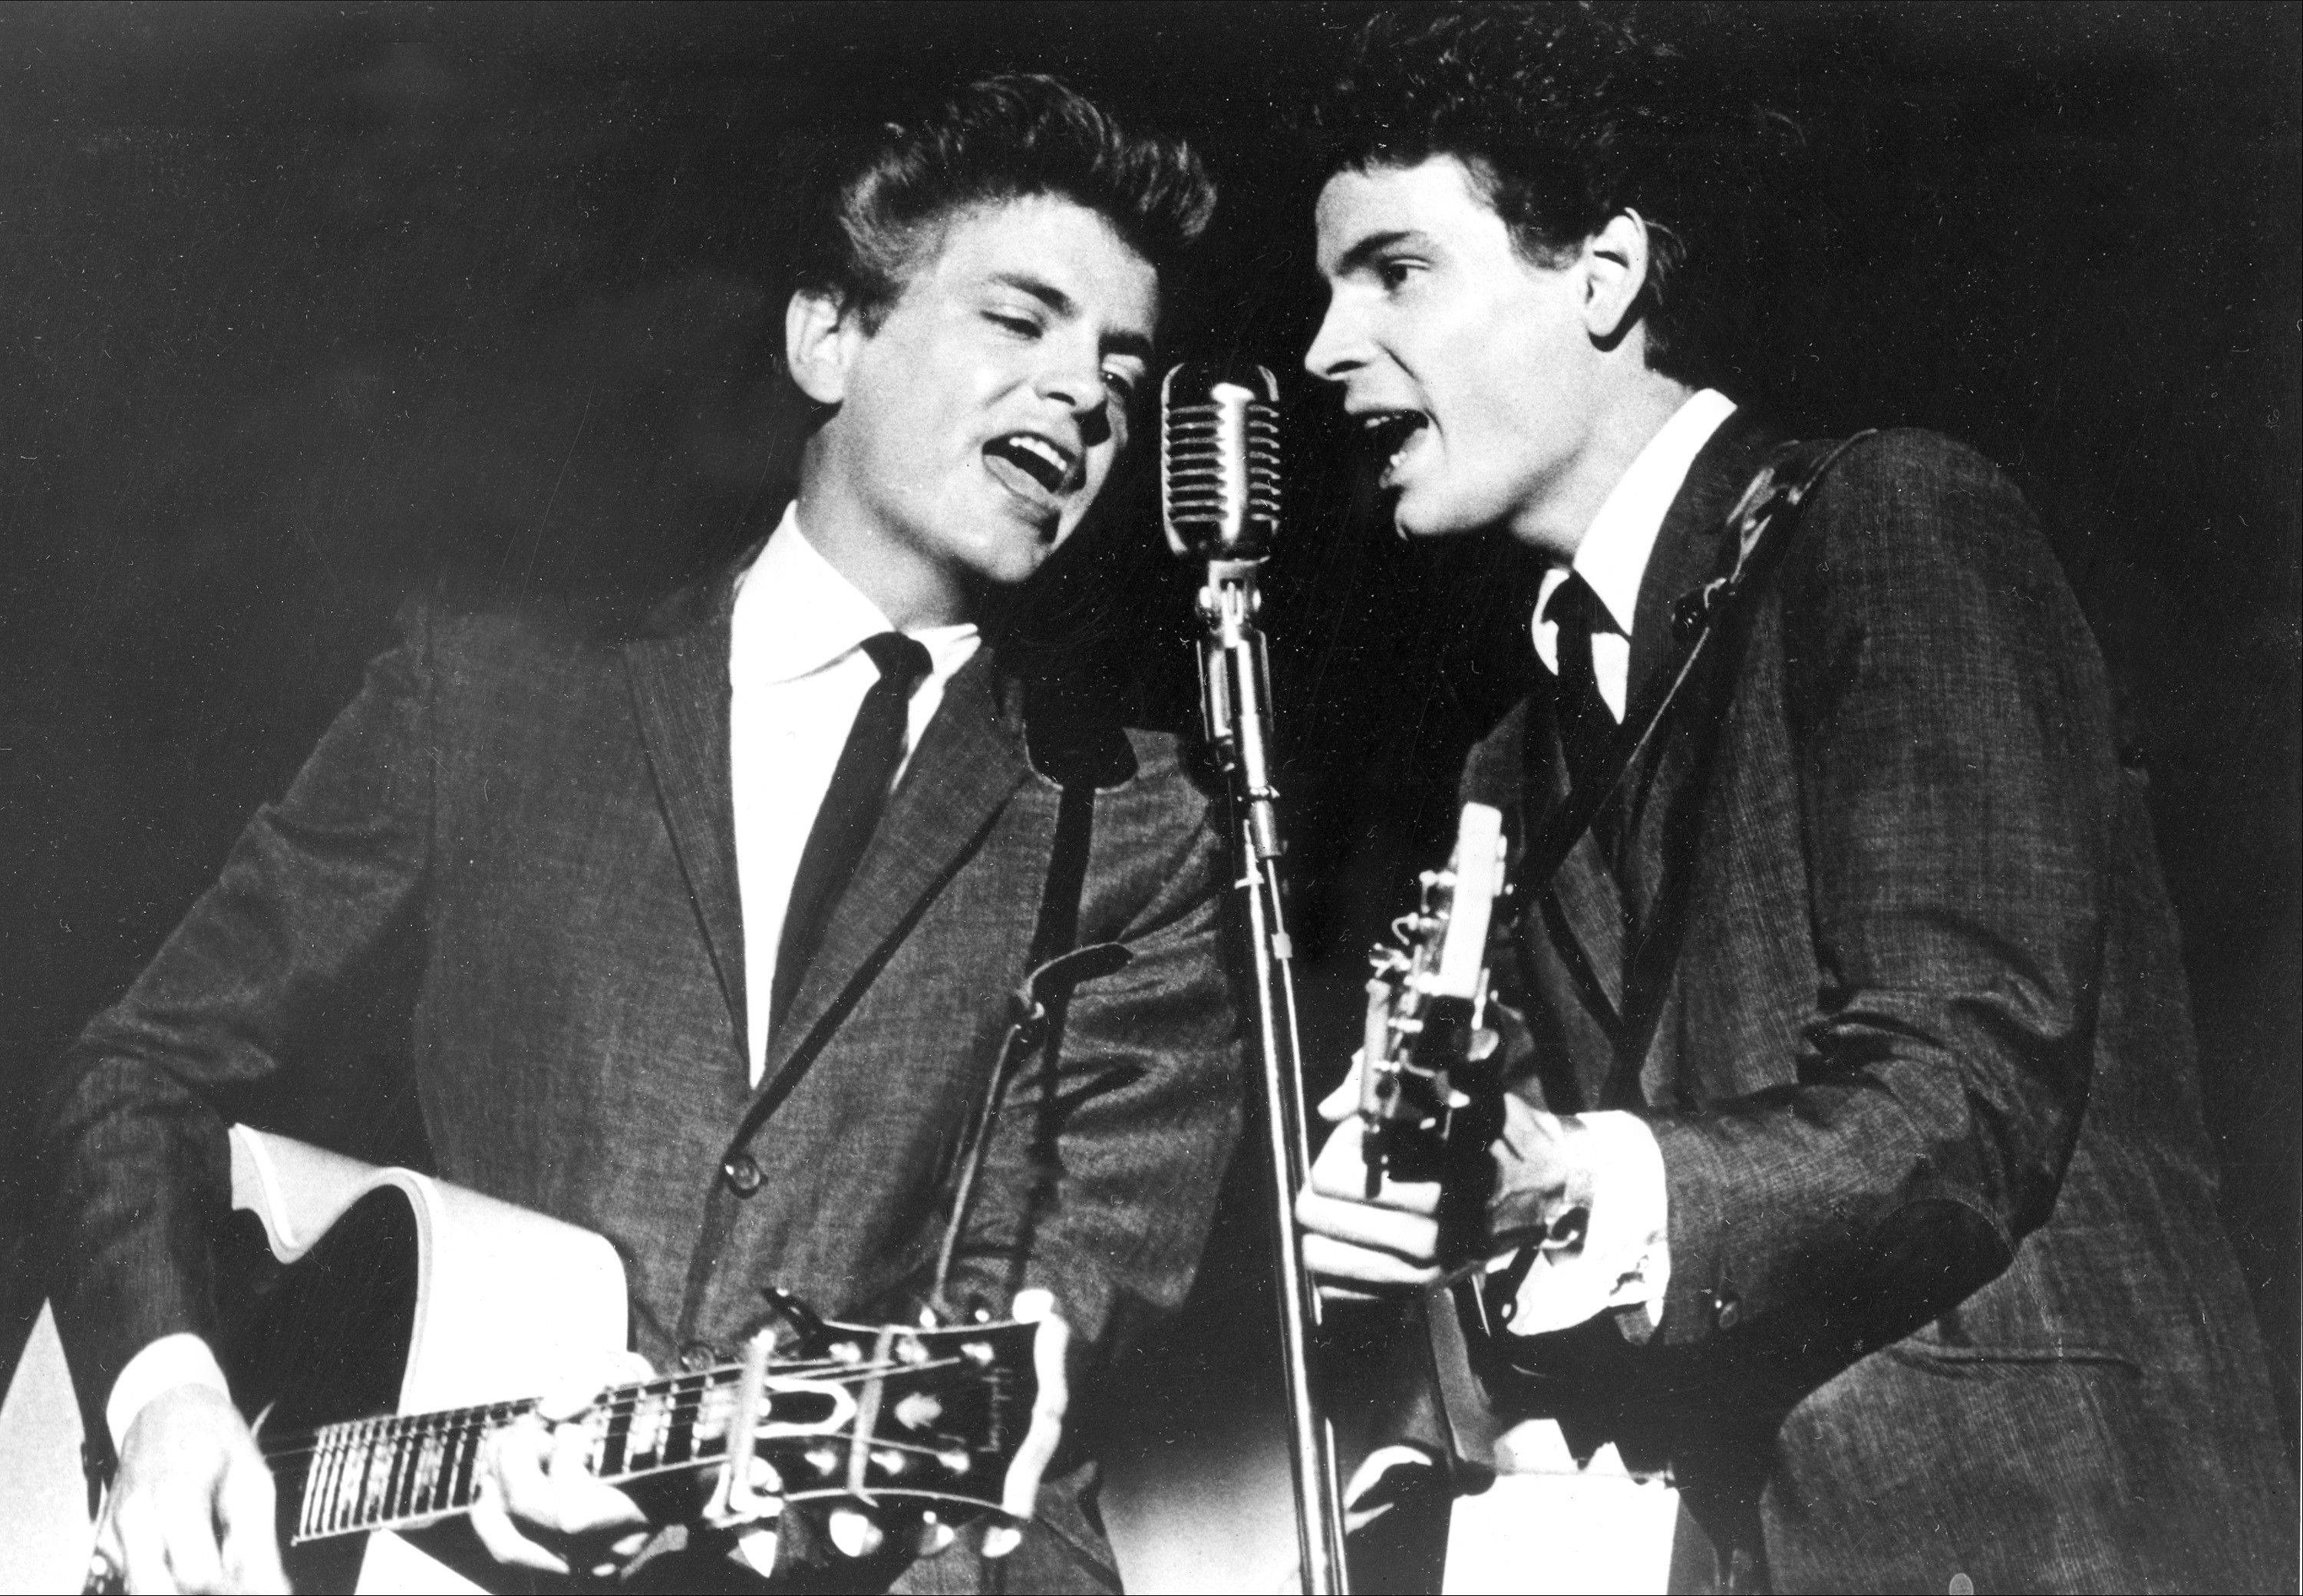 The Everly Brothers, Don and Phil, performing on stage in 1964. Phil Everly, who with his brother Don formed an influential harmony duo that touched the hearts and sparked the imaginations of rock �n� roll singers for decades, died Friday.